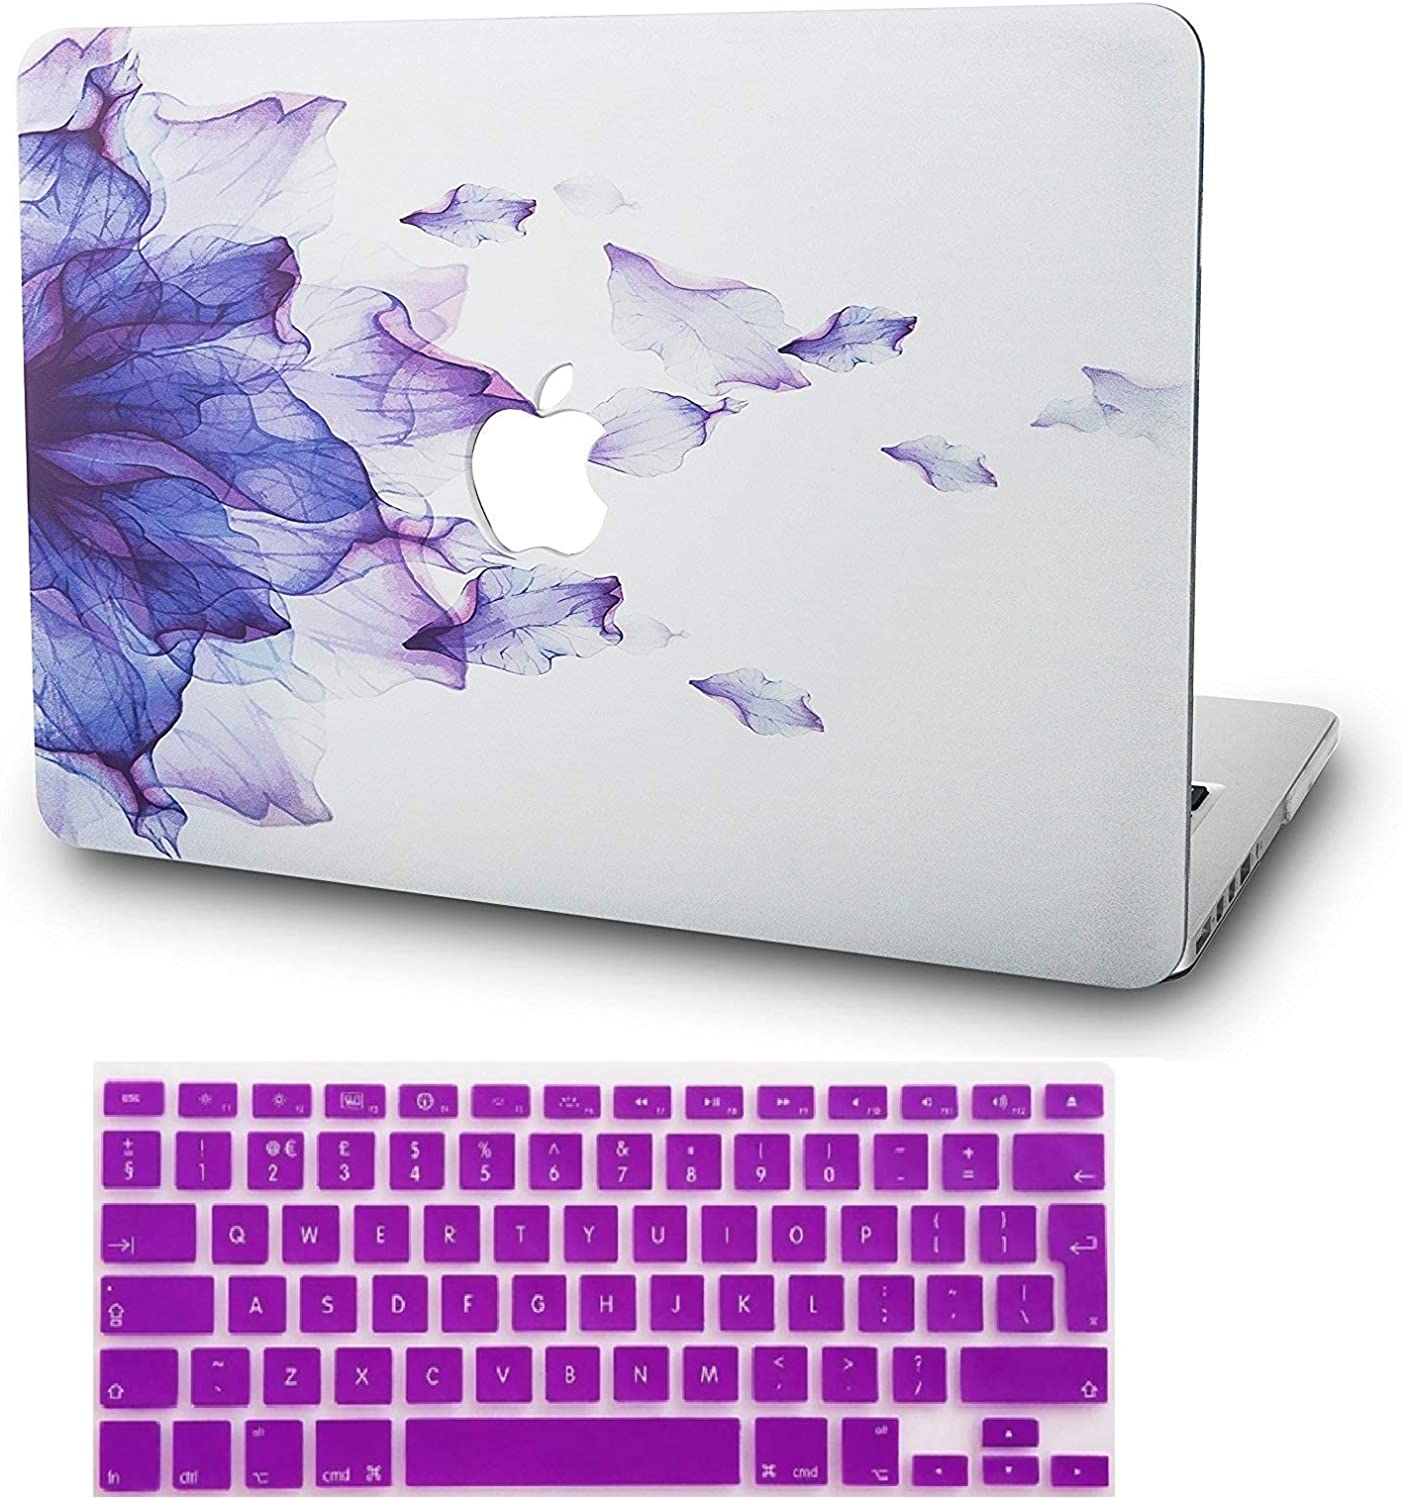 """KECC Laptop Case for MacBook Pro 13"""" (2020/2019/2018/2017/2016) w/Keyboard Cover Plastic Hard Shell A2159/A1989/A1706/A1708 Touch Bar 2 in 1 Bundle (Purple Flower)"""